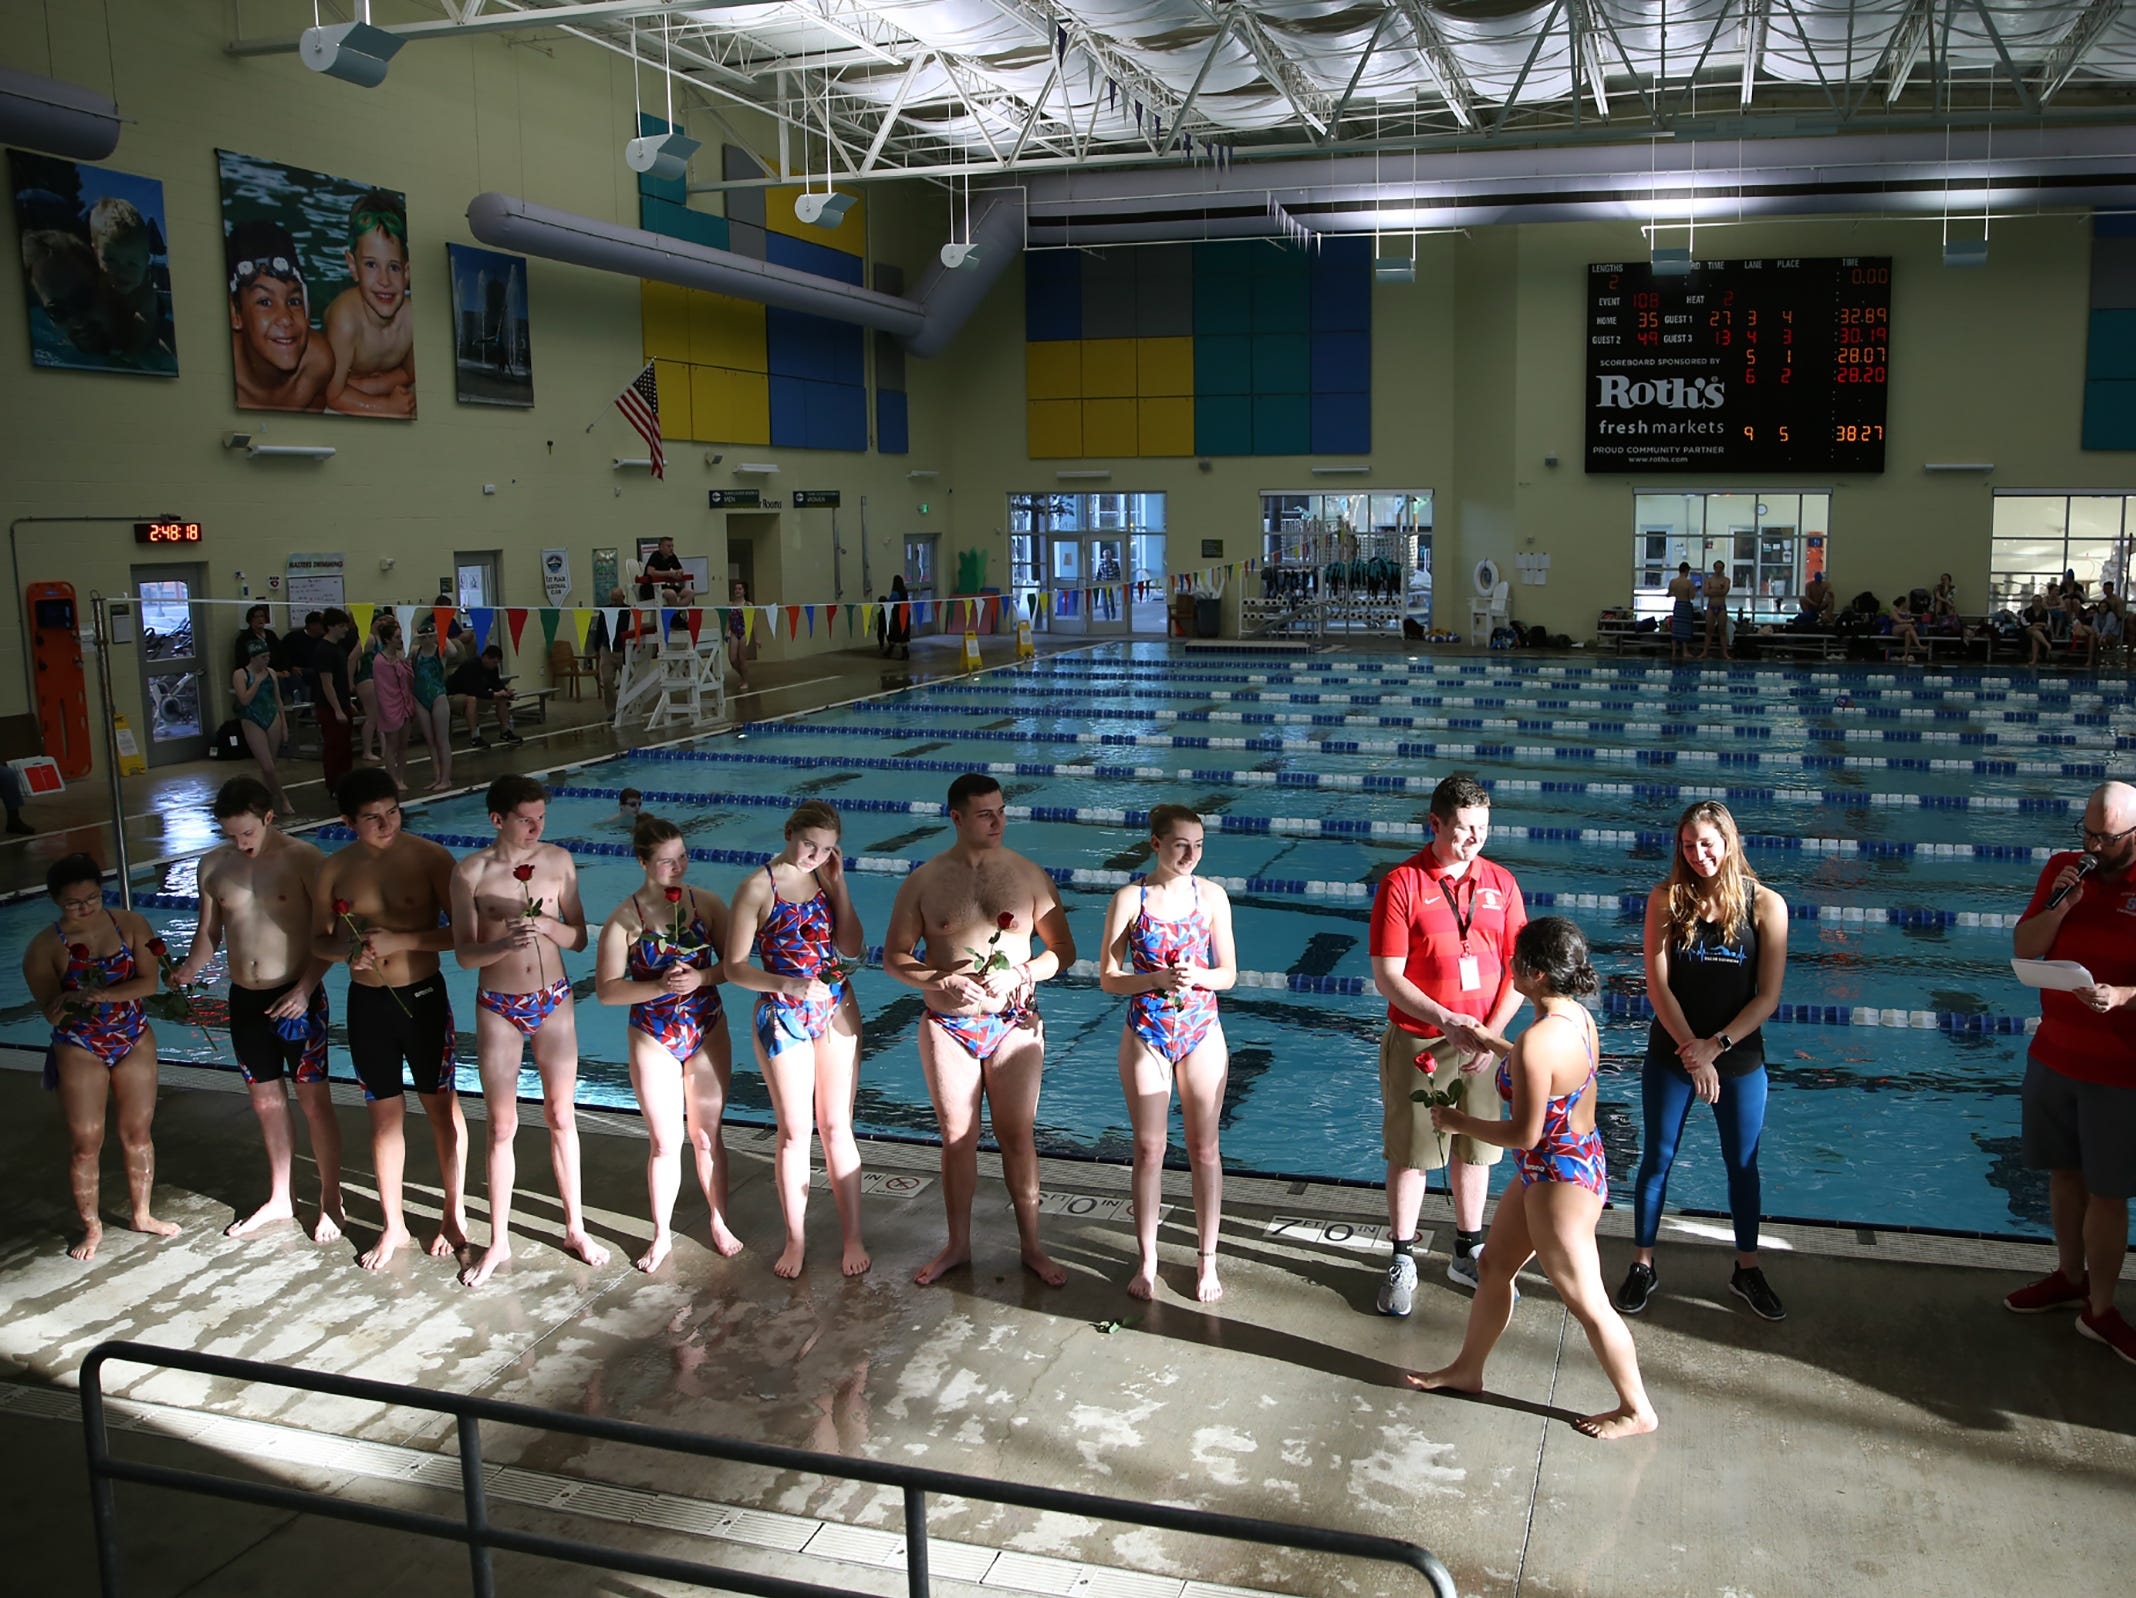 South Salem High School's swim team seniors receive recognition during a dual meet against West Salem at the Kroc Center on Tuesday, Jan. 29, 2019.